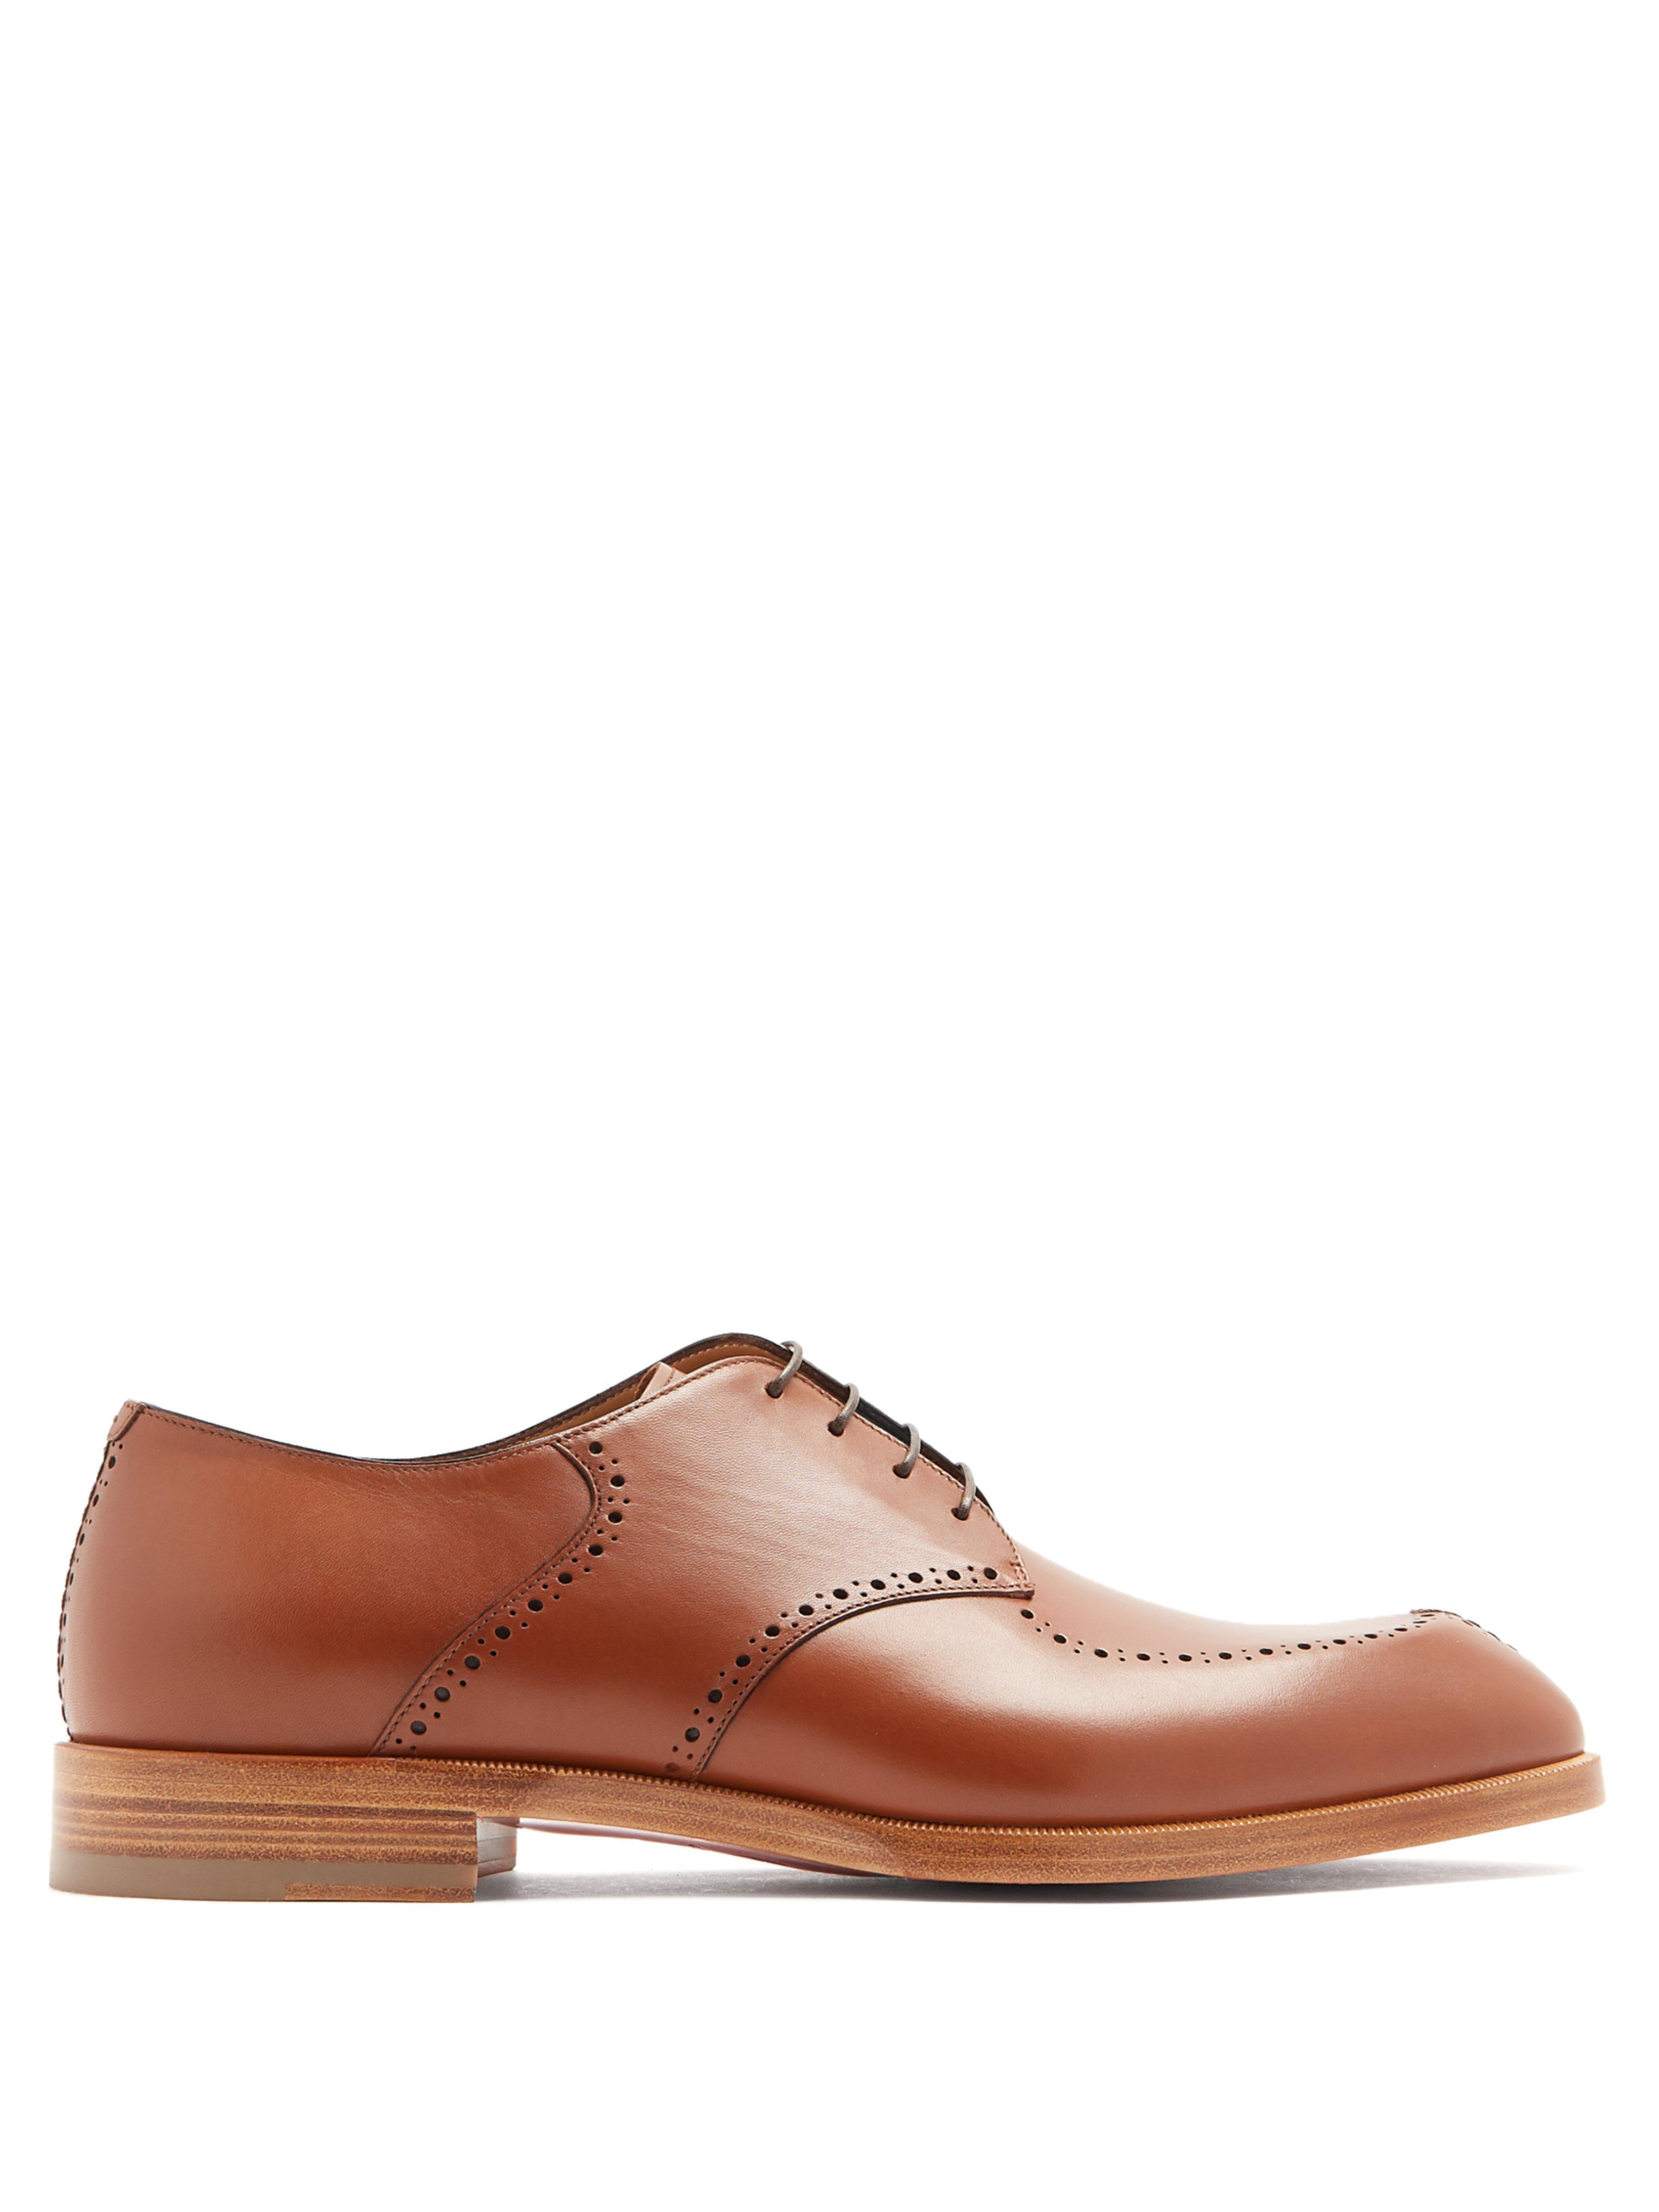 aef81a69924 Christian Louboutin A Mon Homme Leather Derby Shoes in Brown for Men ...